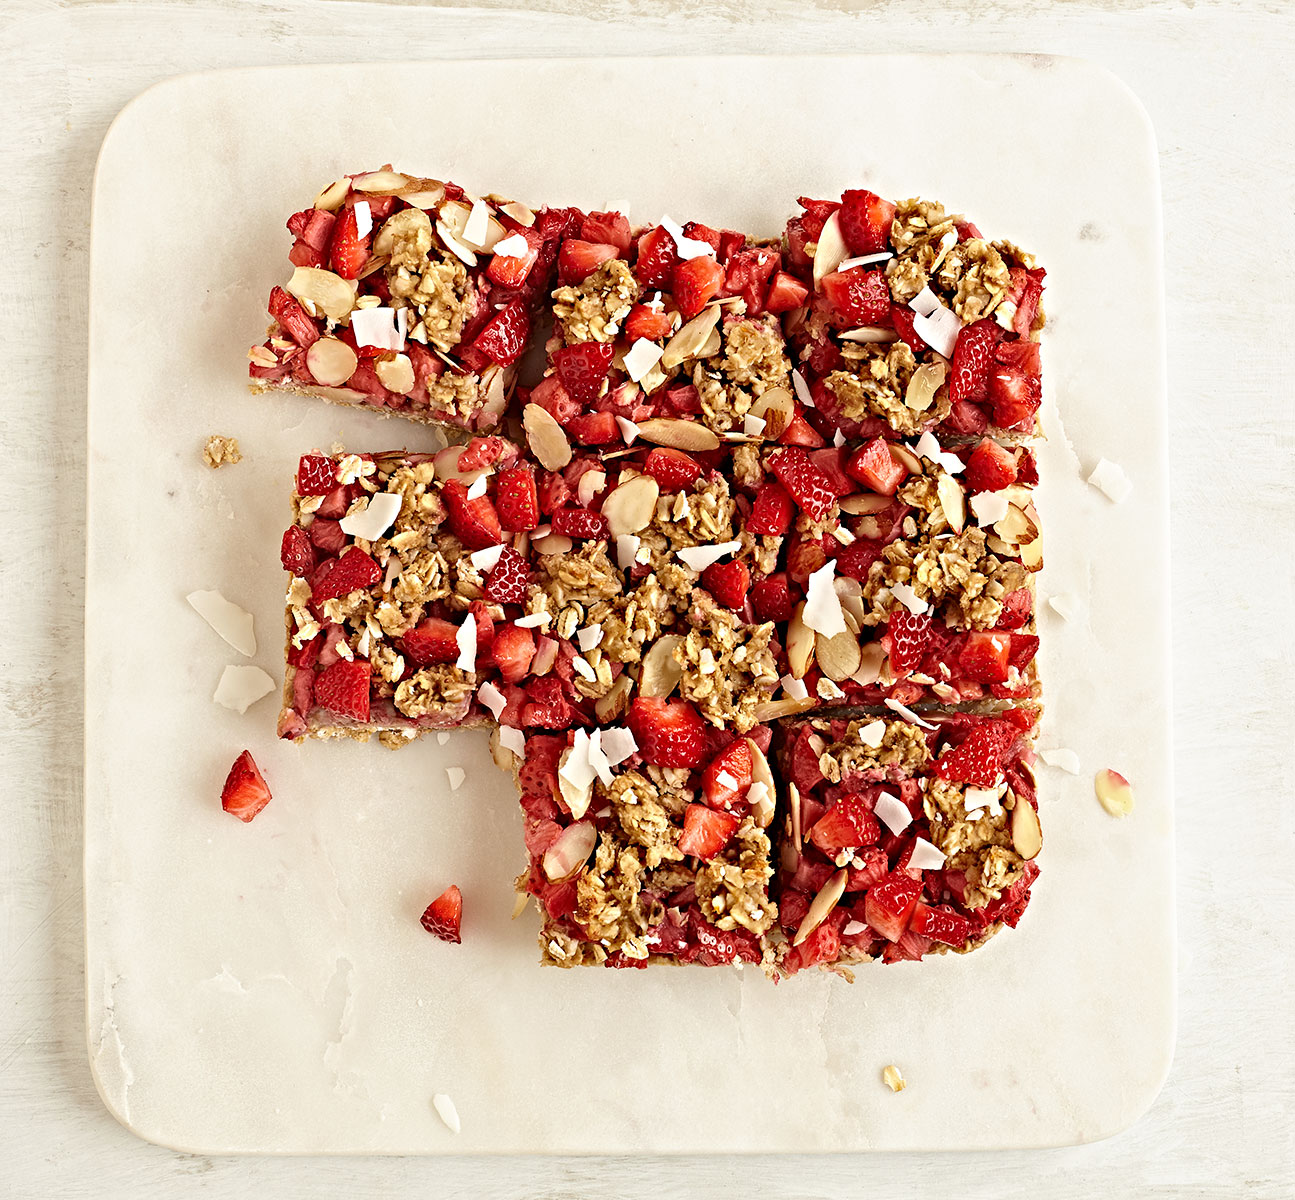 Gluten-free strawberry breakfast bars with almonds, oats, and coconut on marble board.